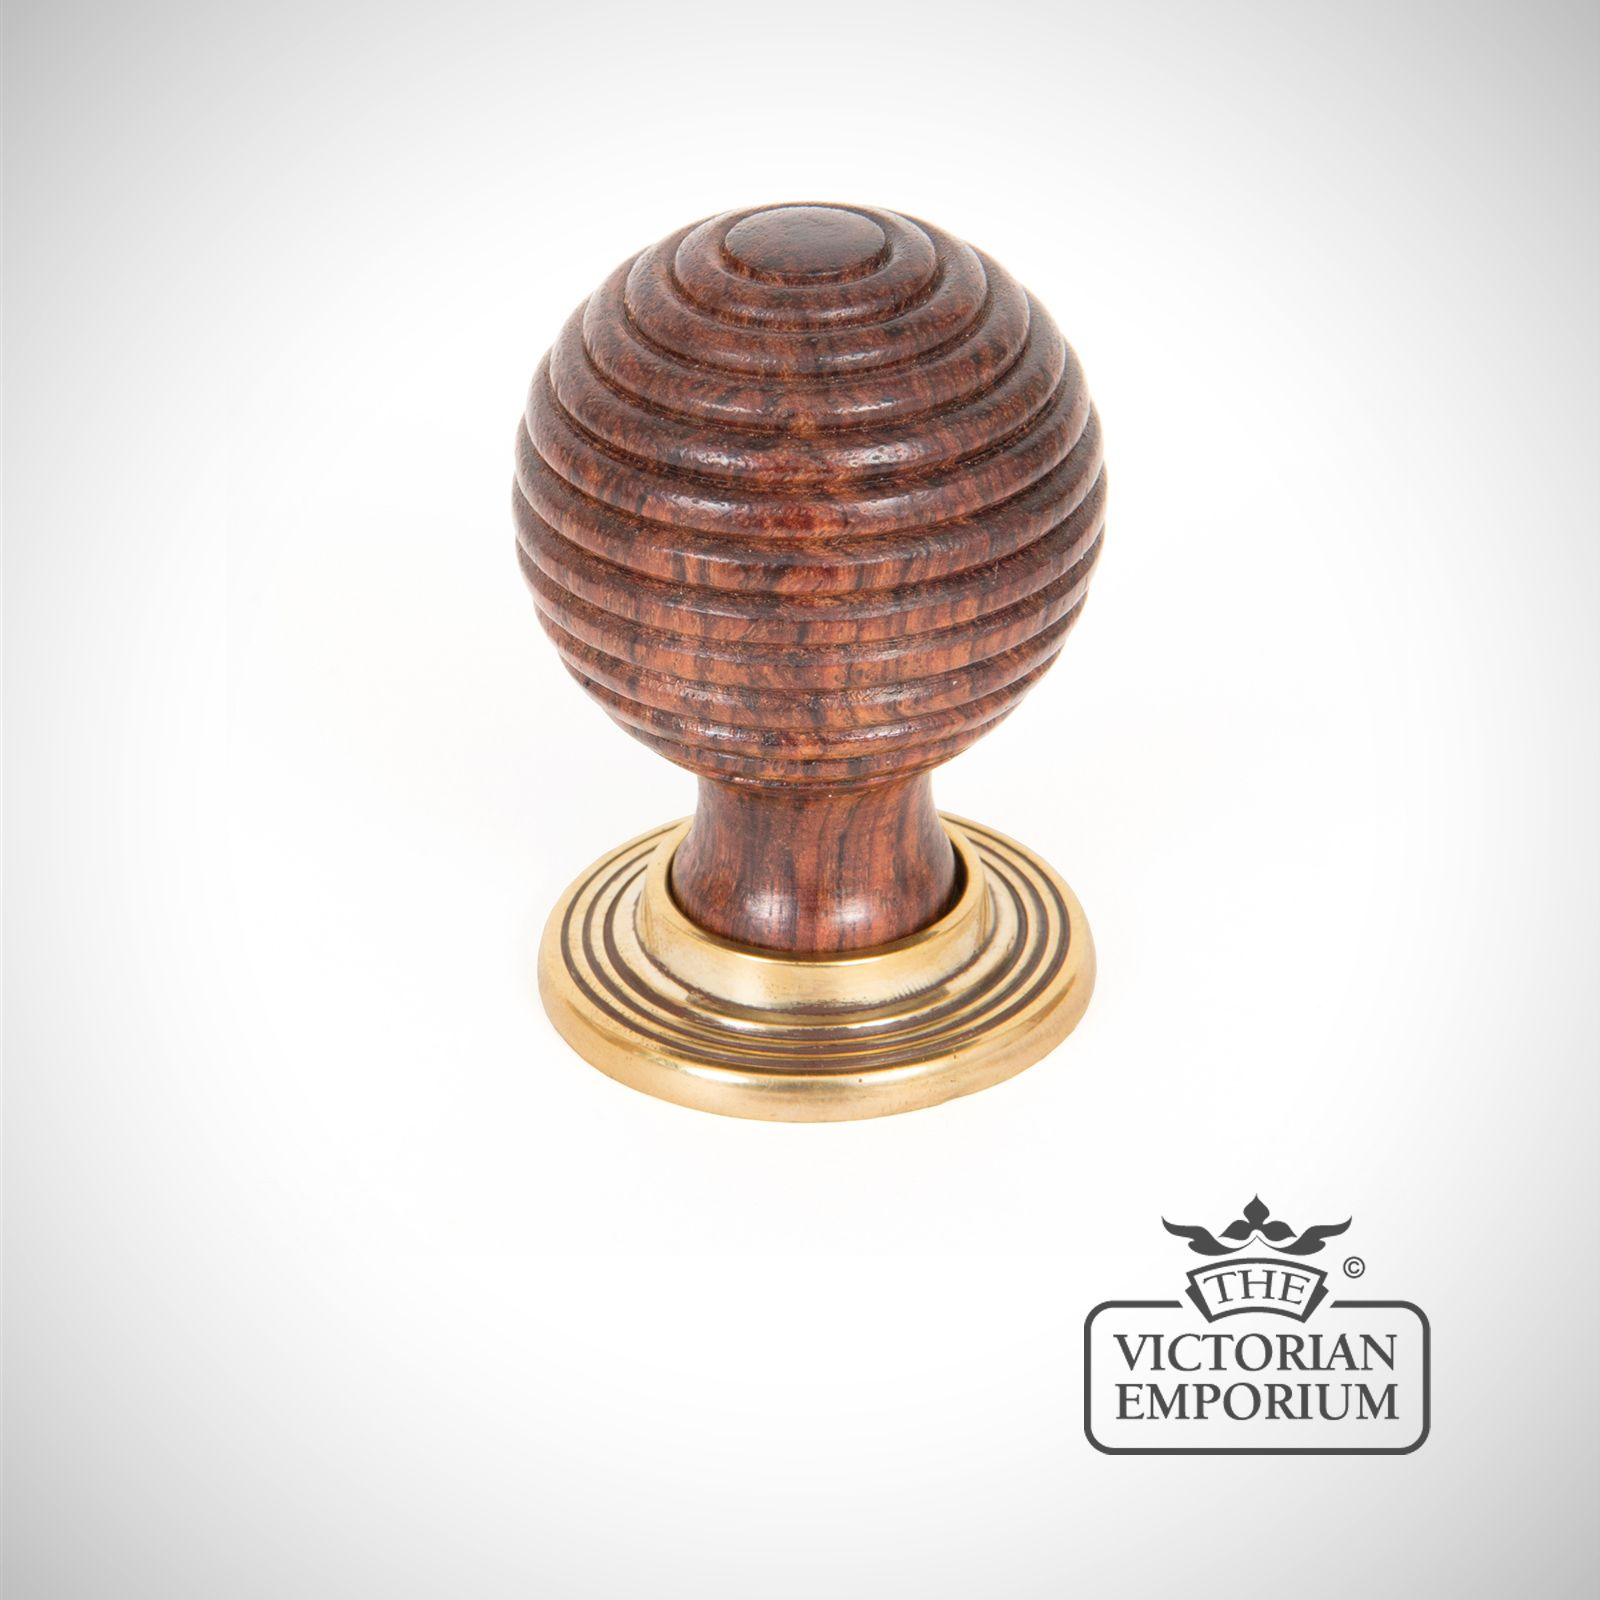 Rosewood & Antique Brass Beehive Cabinet Knob